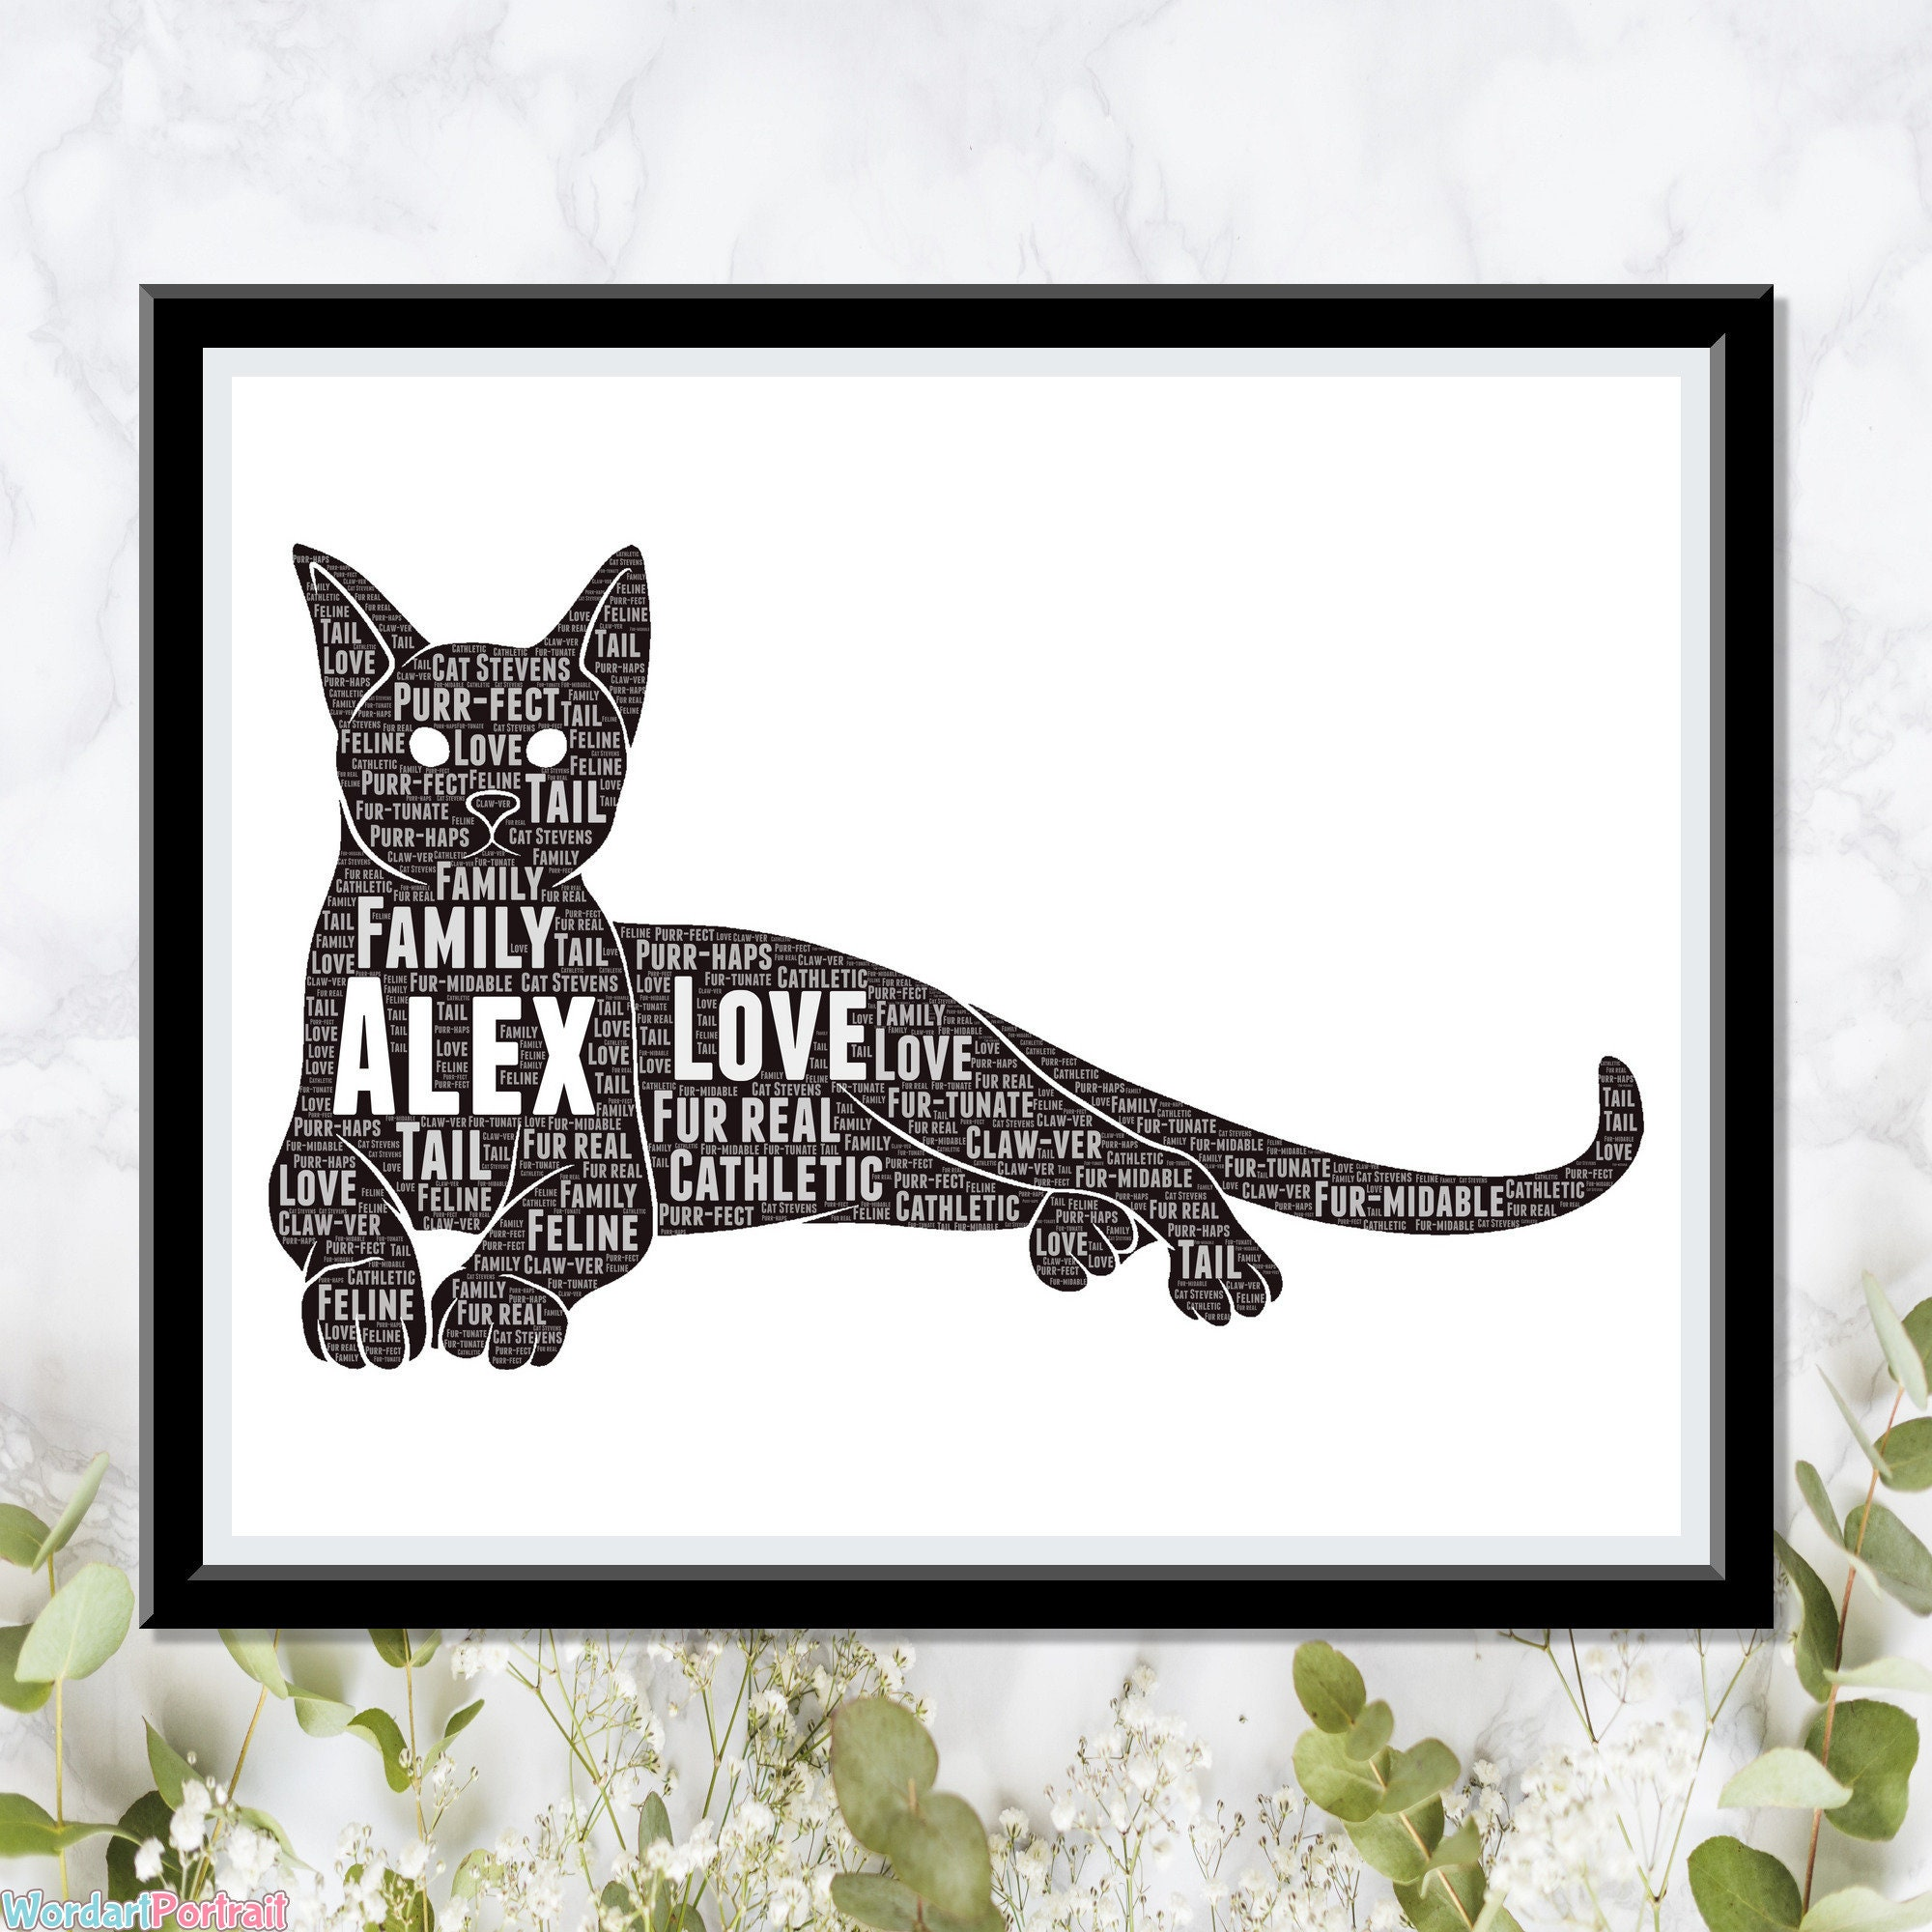 Personalized Cat Owner Lovers Gifts - Cat Word Art Wall Room Decor Prints - Crazy Cat Meow Lady Gift Pets Mum Mom Dad Owner Print Gifts